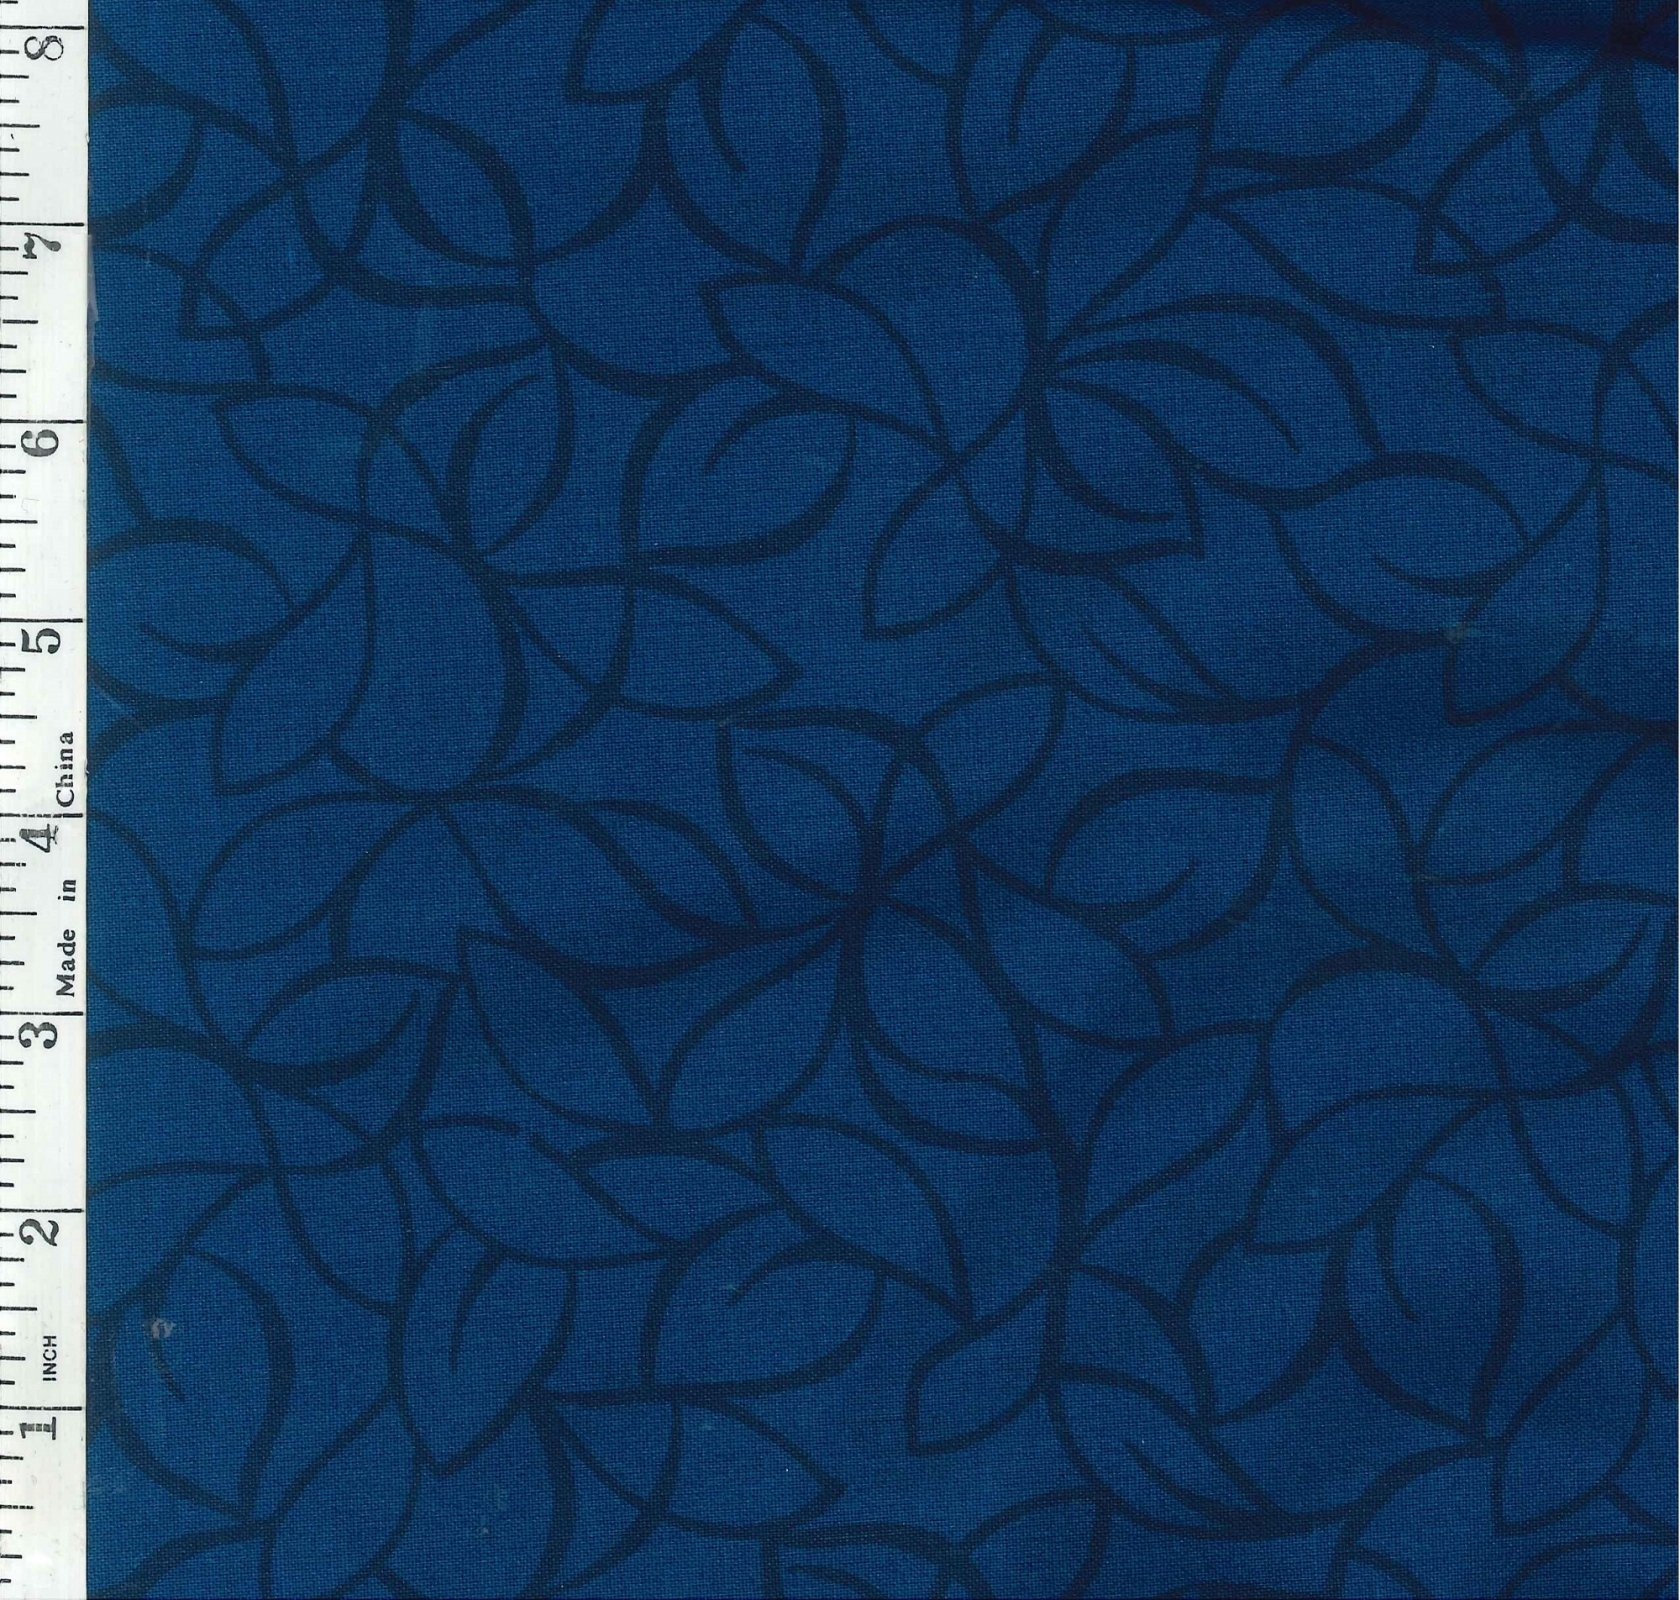 Back Friday Fabric - Wide Backing Blue by Blank Fabrics